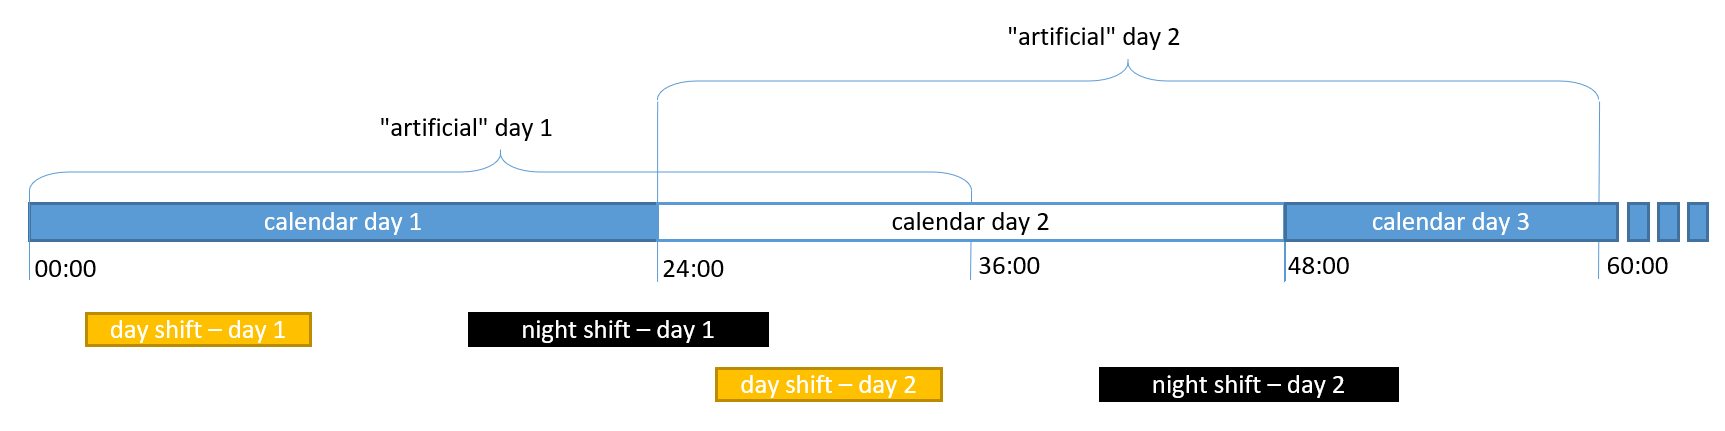 Multi day optimization extended day length